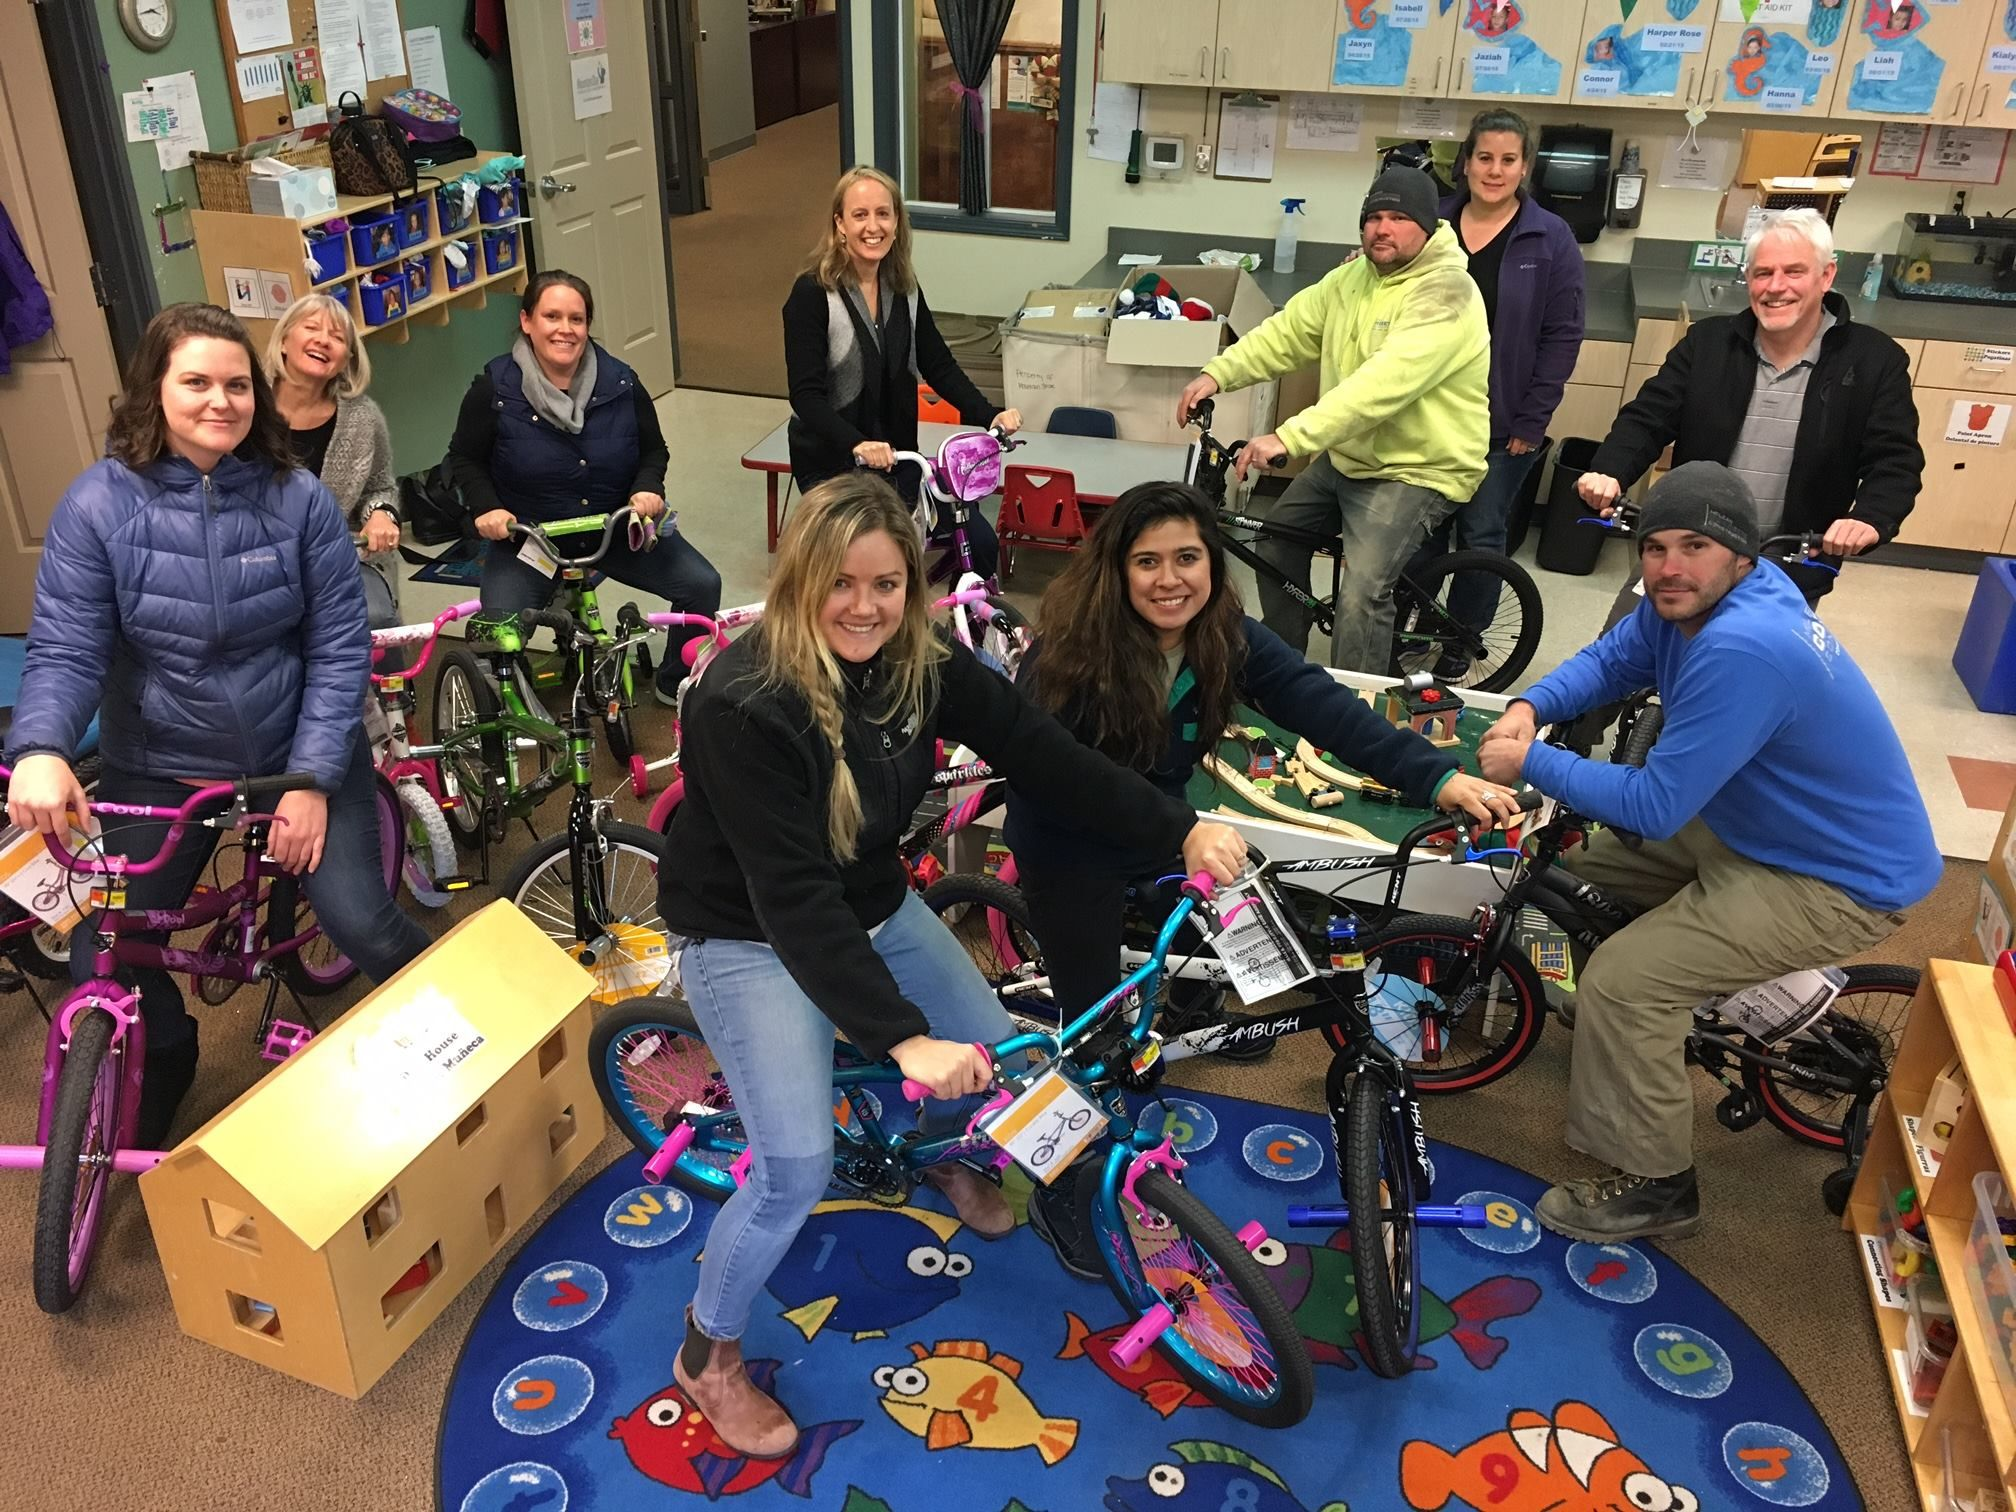 MountainStar Holiday Campaign Raises over $125,000!